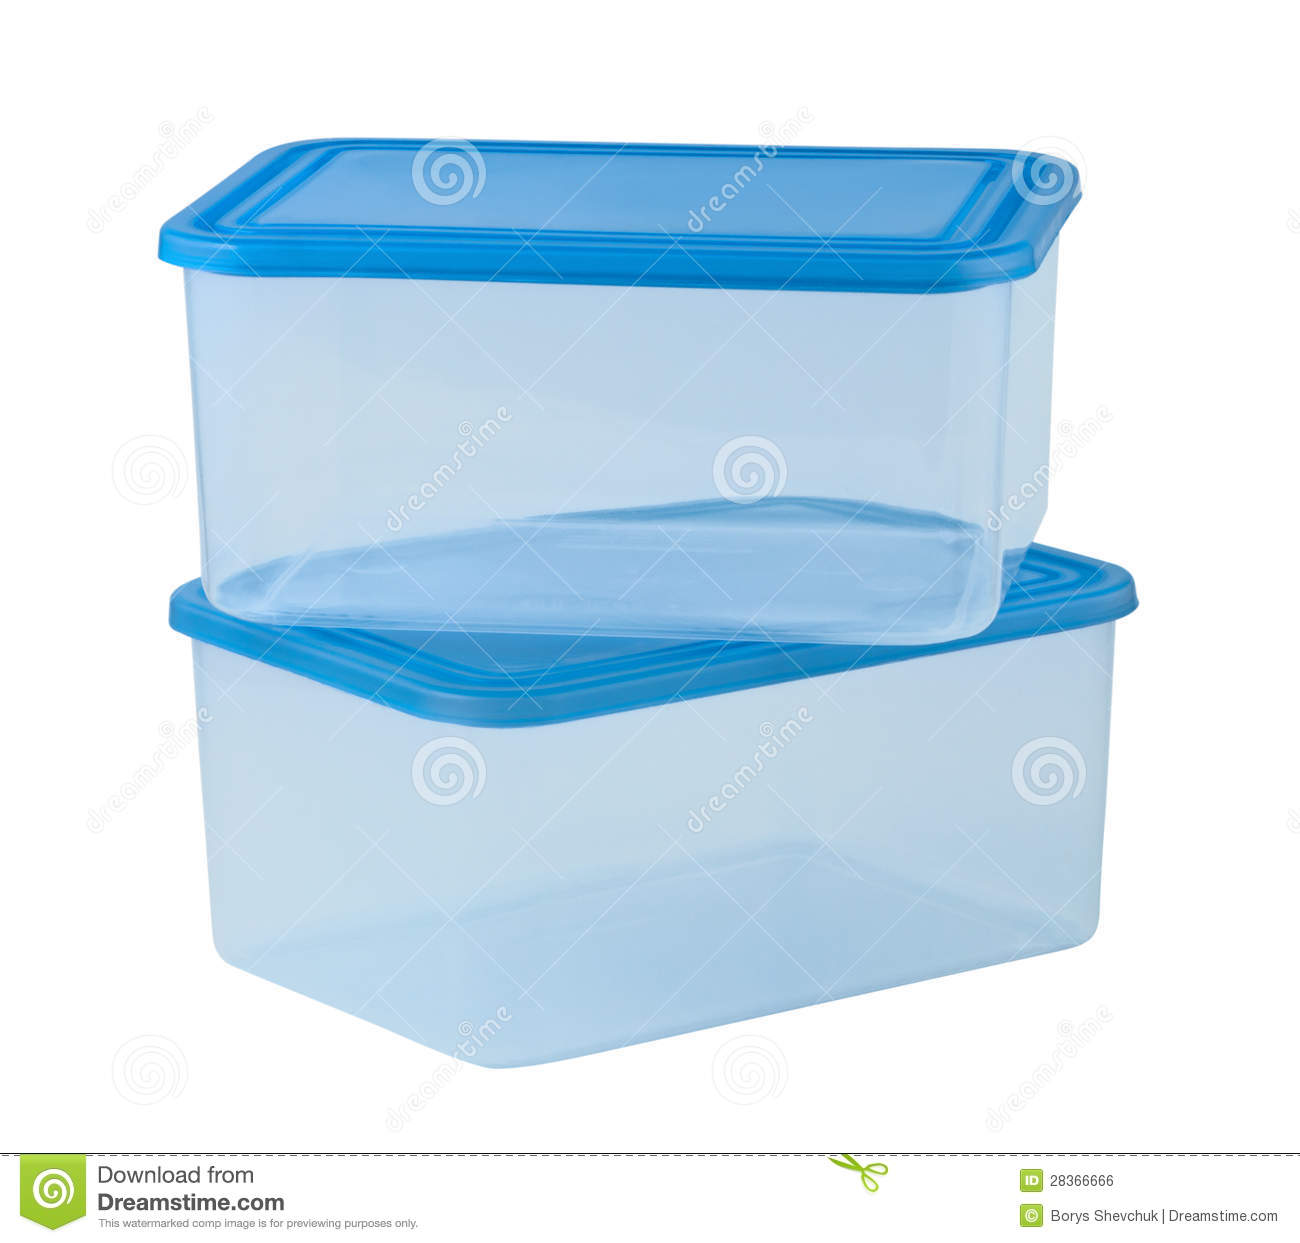 Plastic Container For Food Royalty Free Stock Image   Image  28366666